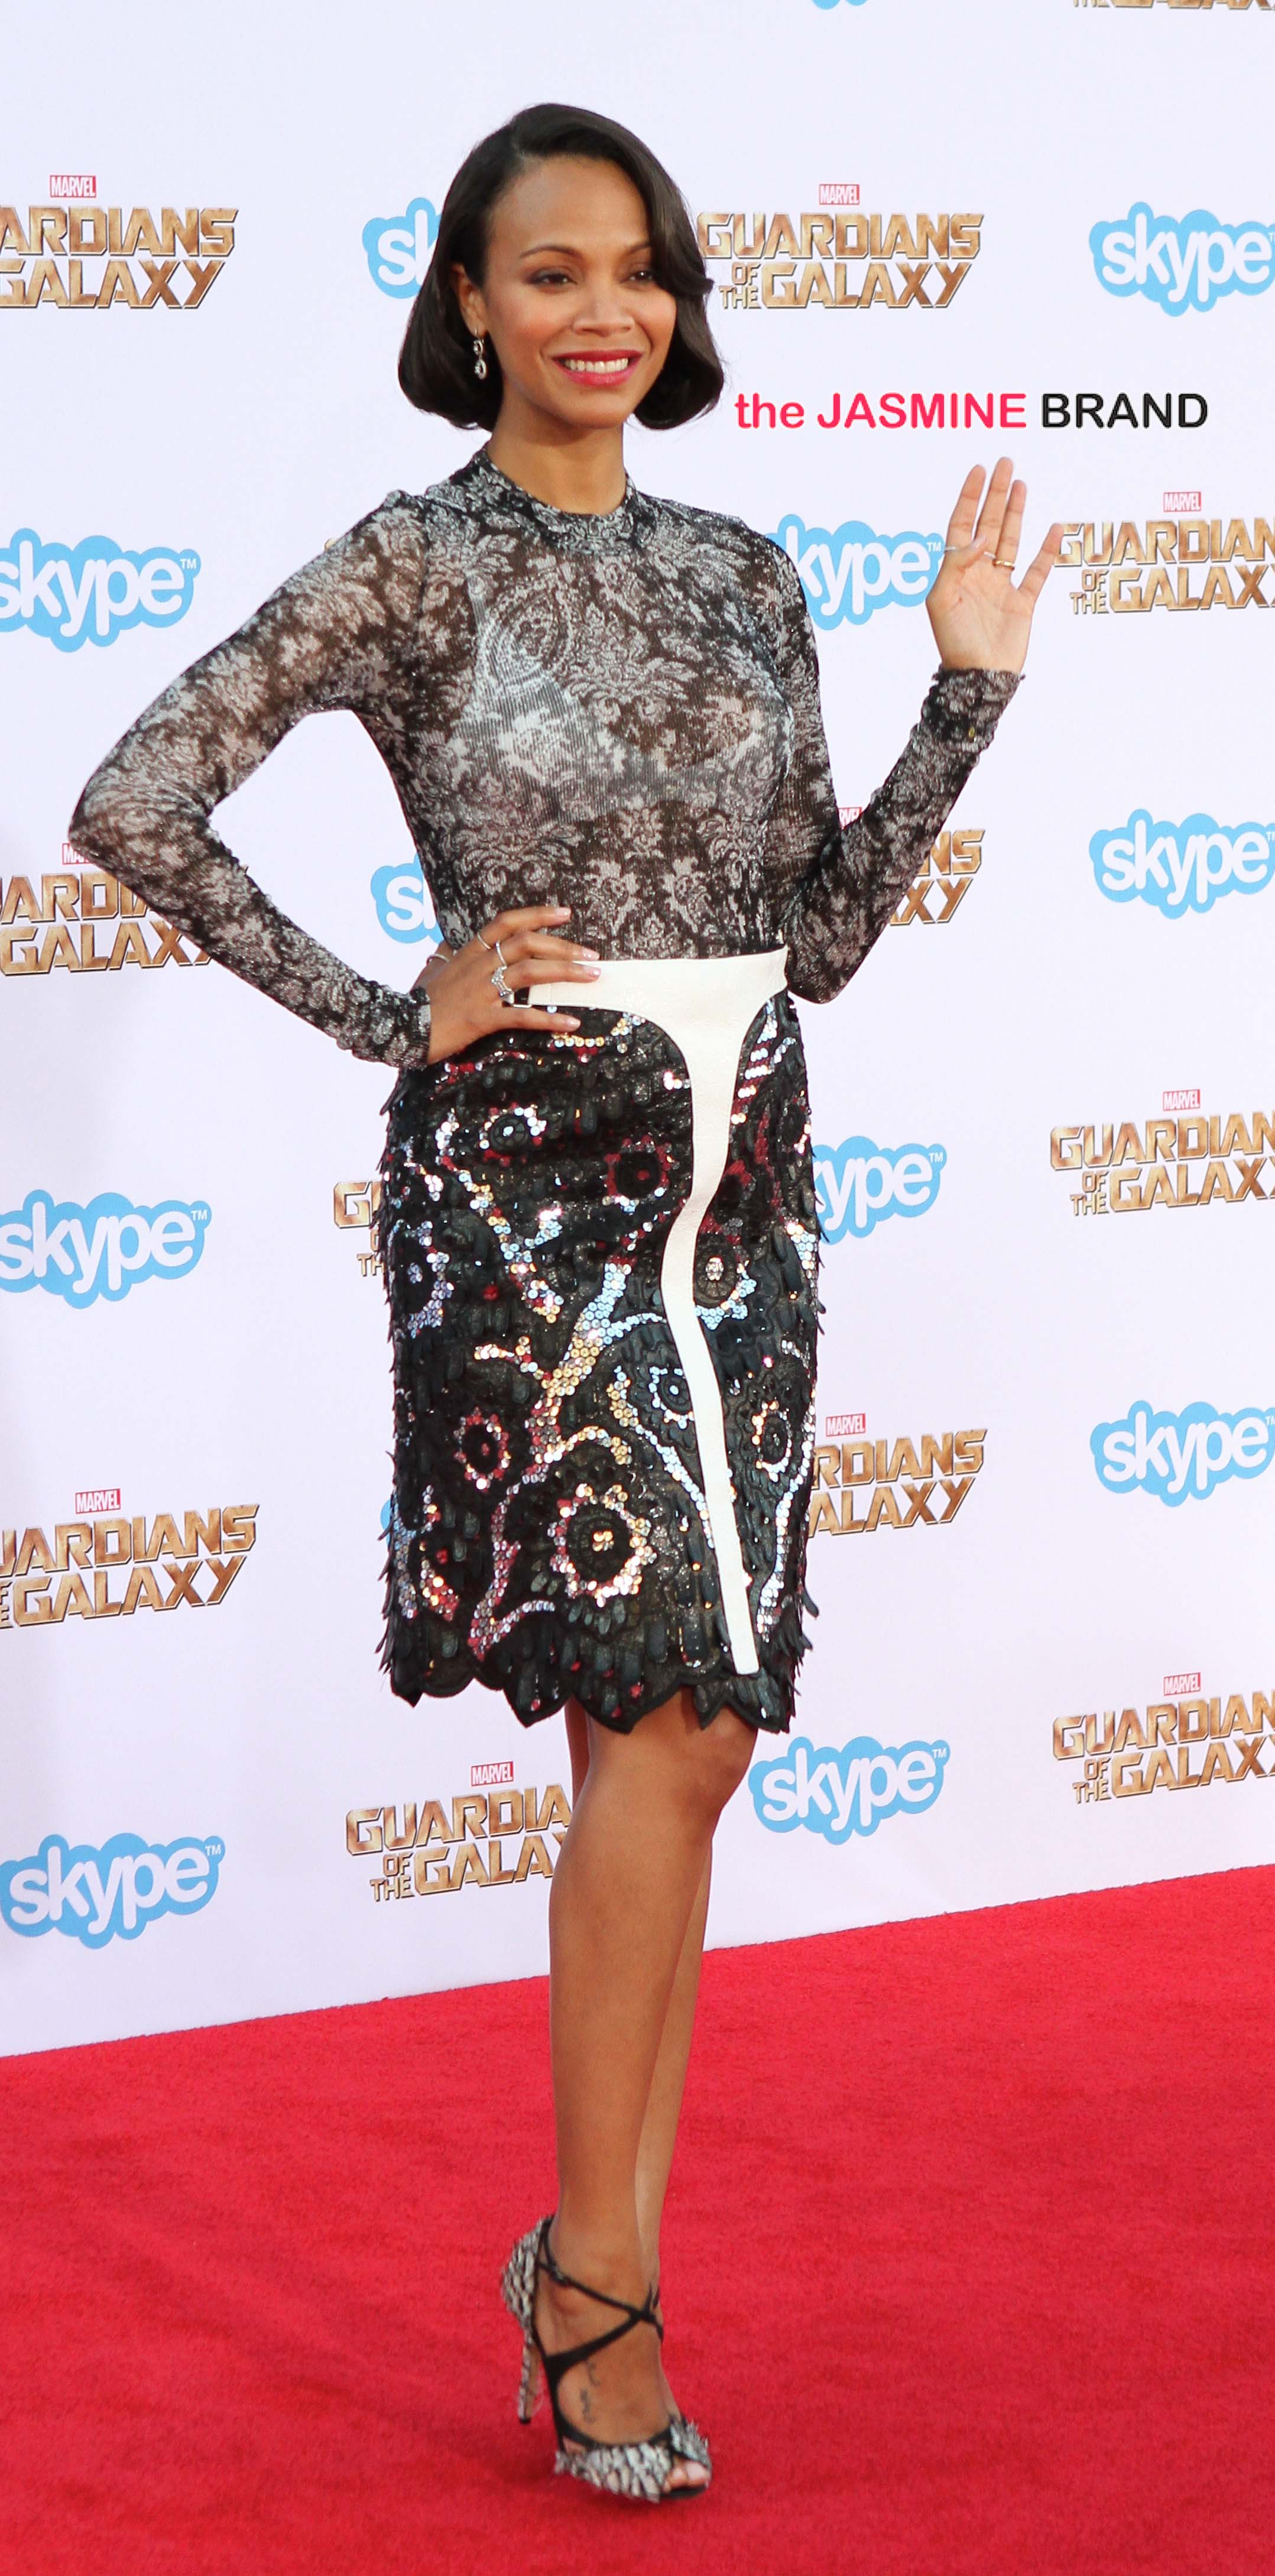 Celebrities attend the 'Guardians Of The Galaxy' premiere at the El Capitan Theatre in Hollywood, CA